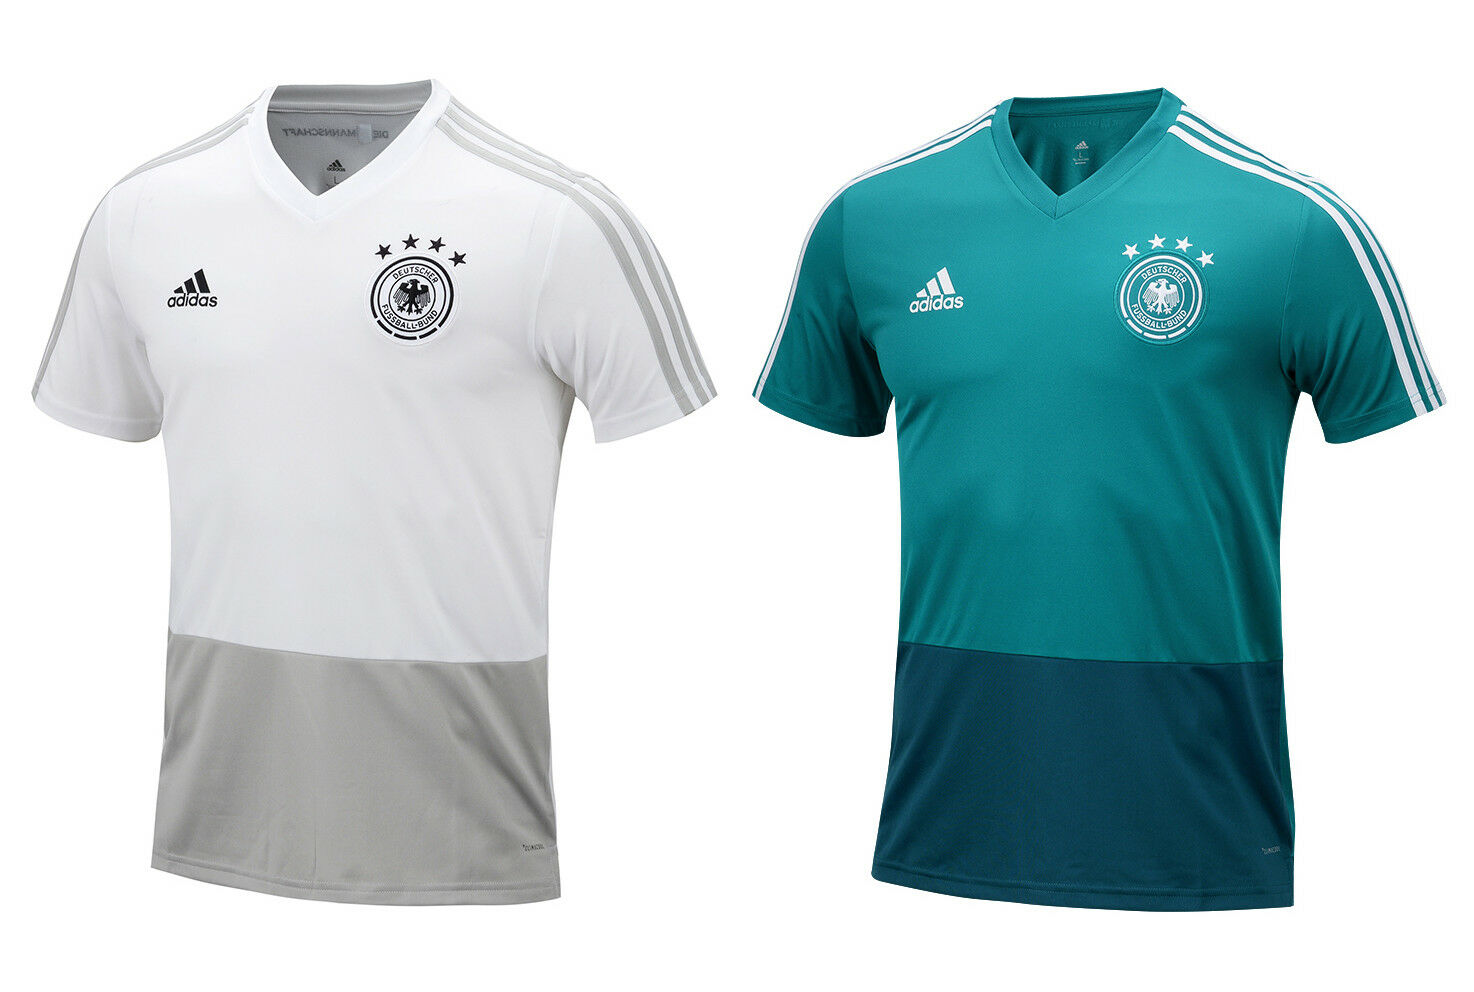 Adidas DFB Allemagne Training Jersey (CE6612) Football Soccer T-Shirt Top Tee